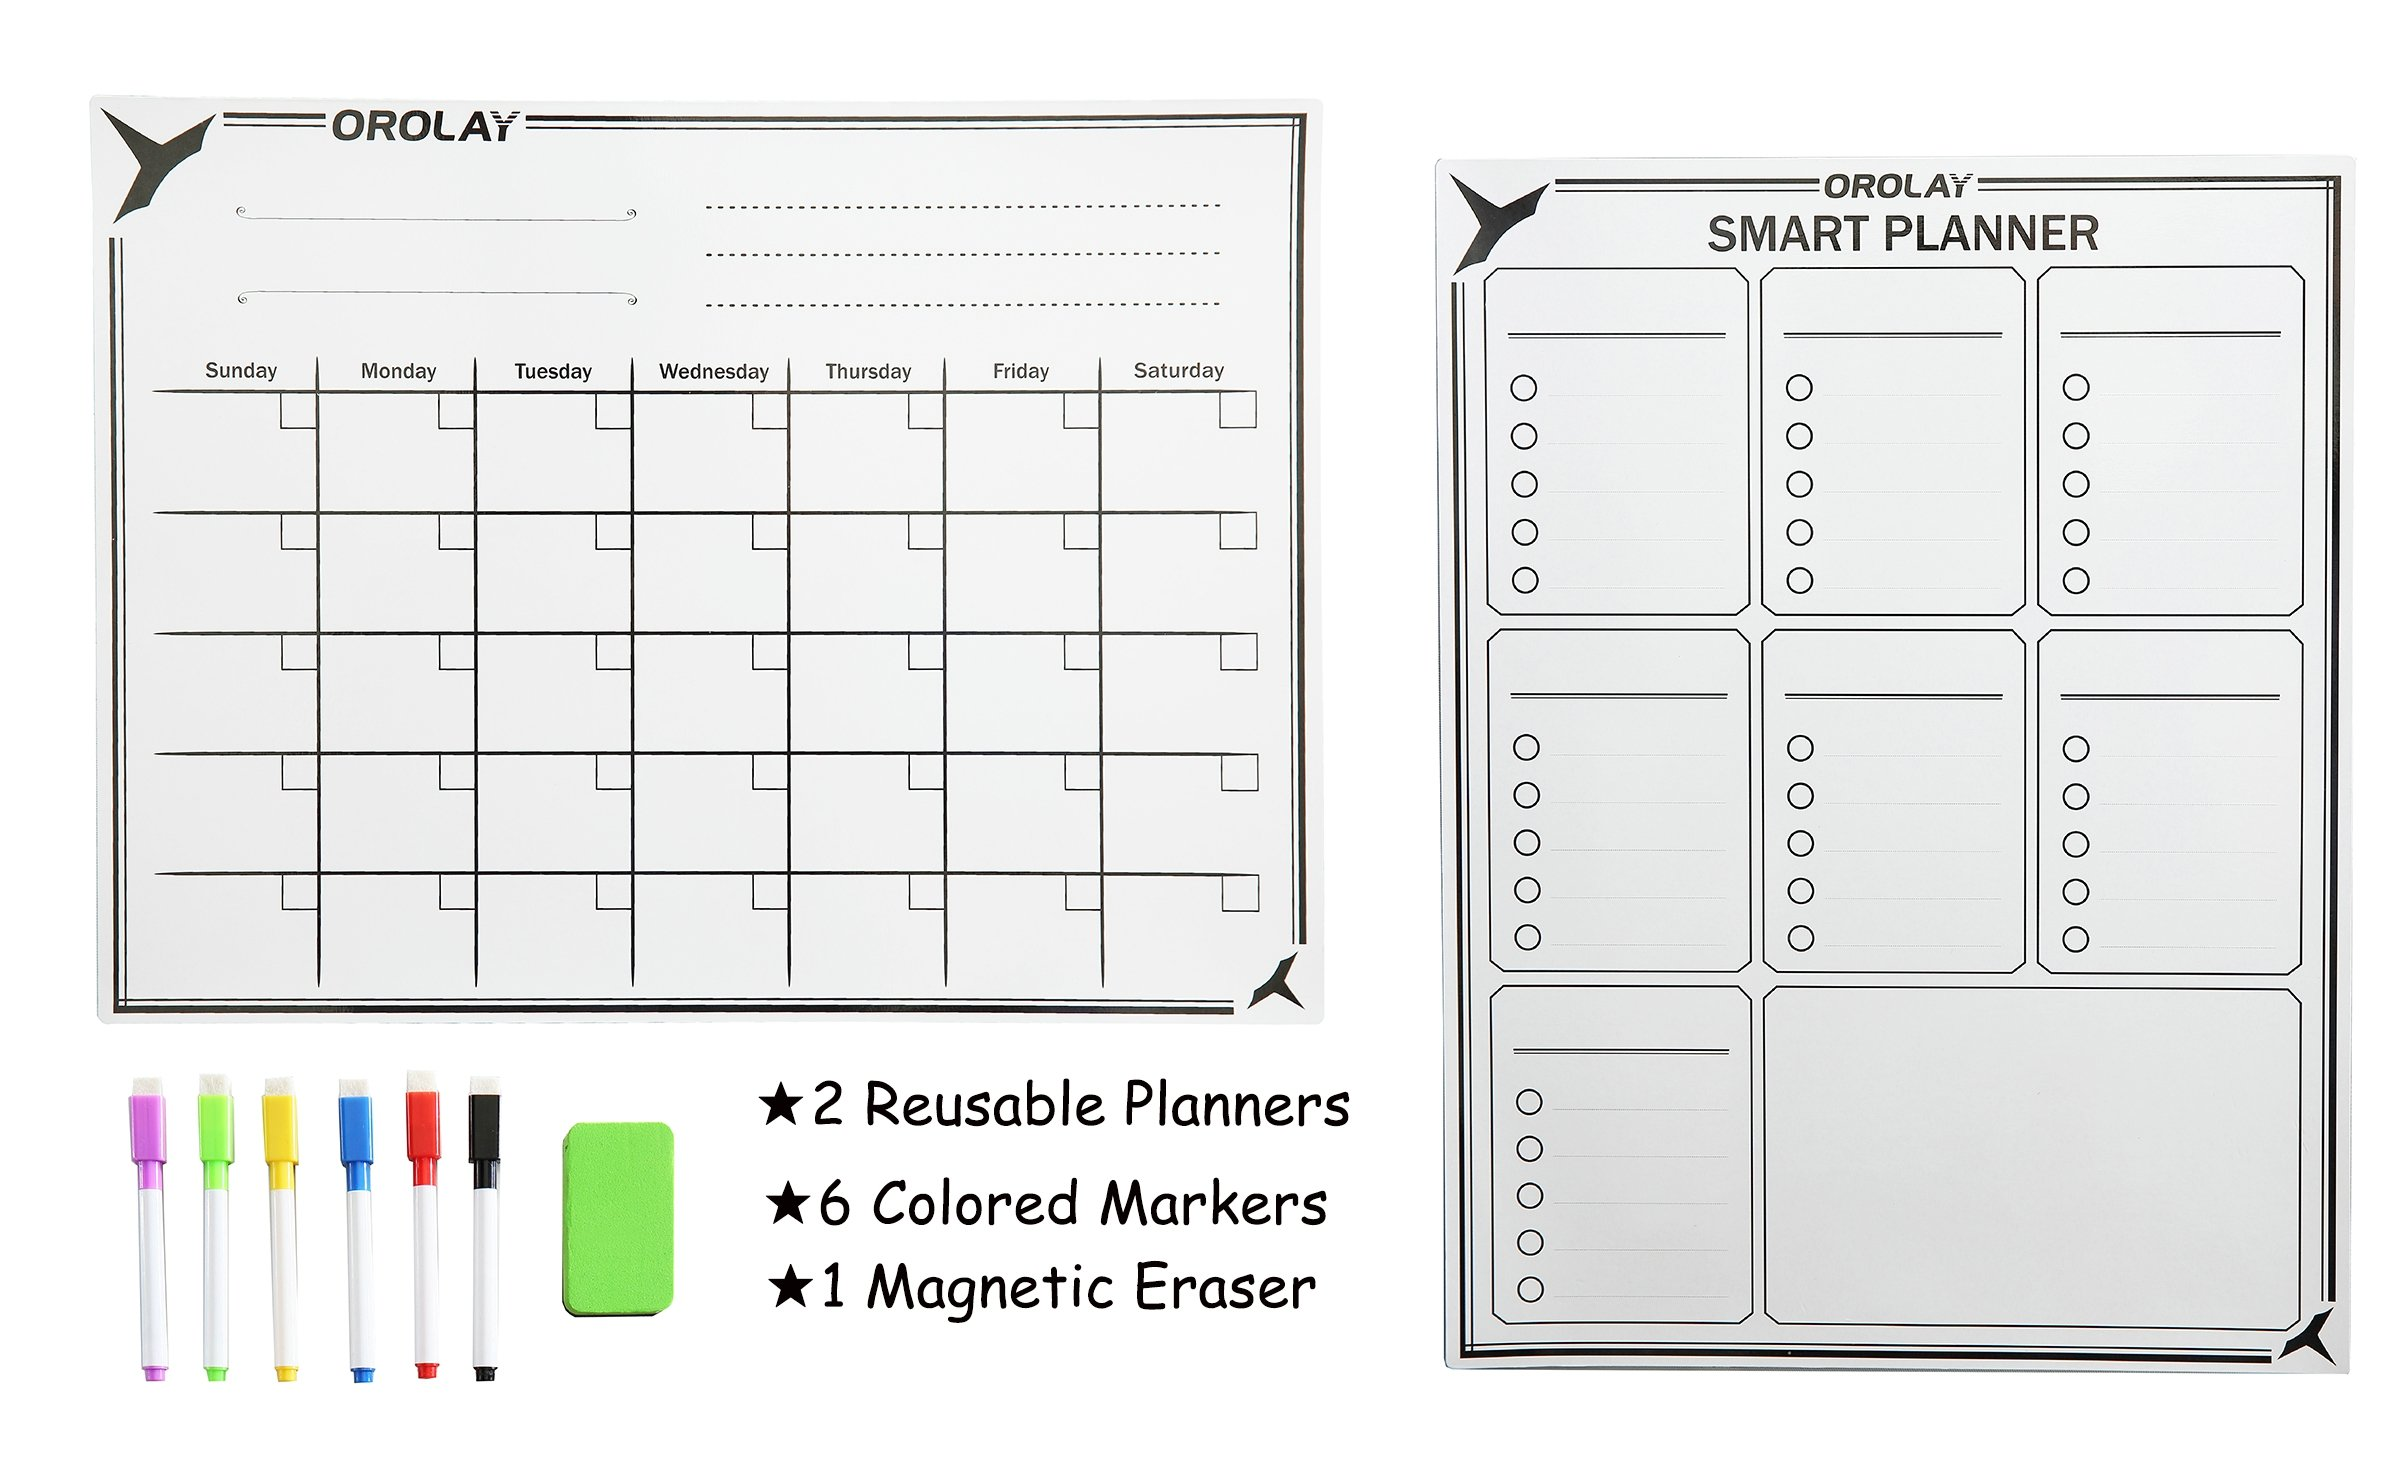 Orolay Refrigerator Stickers Planner Calendar White Board Dry Erase Set Monthly Weekly Daily Planners (White)